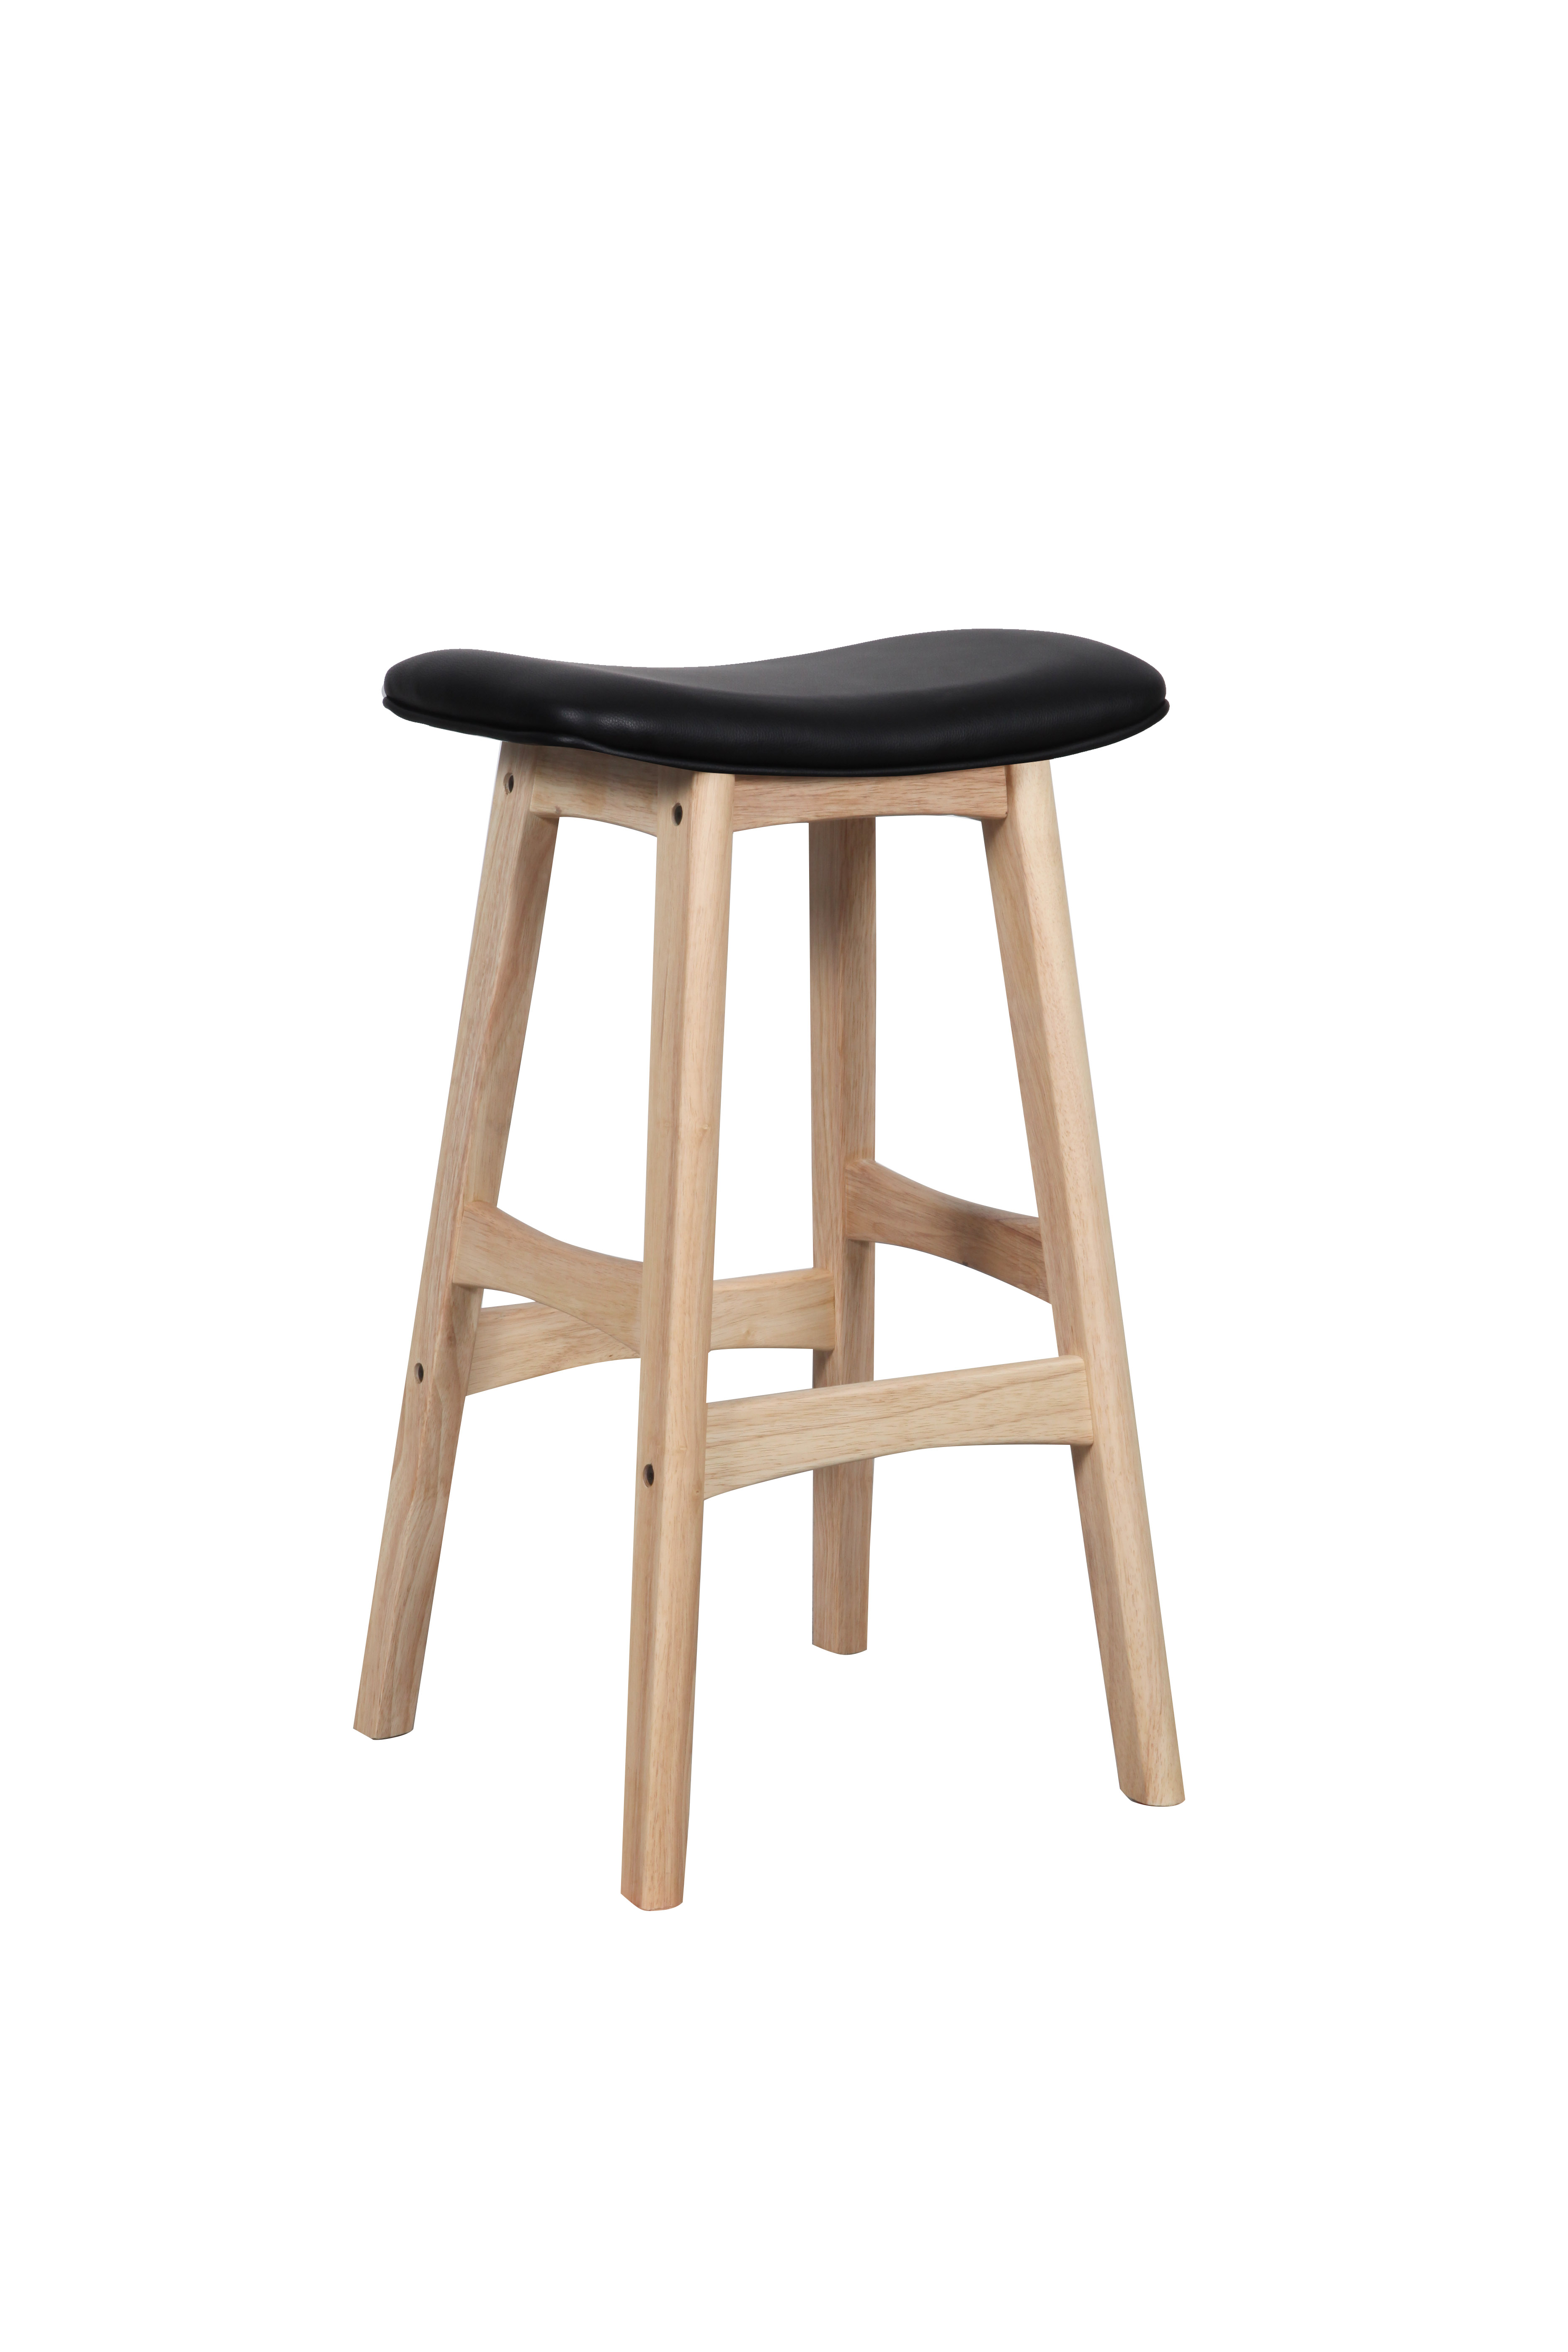 stool chair fantastic furniture best posture office gangnam bar home 43 high quality at